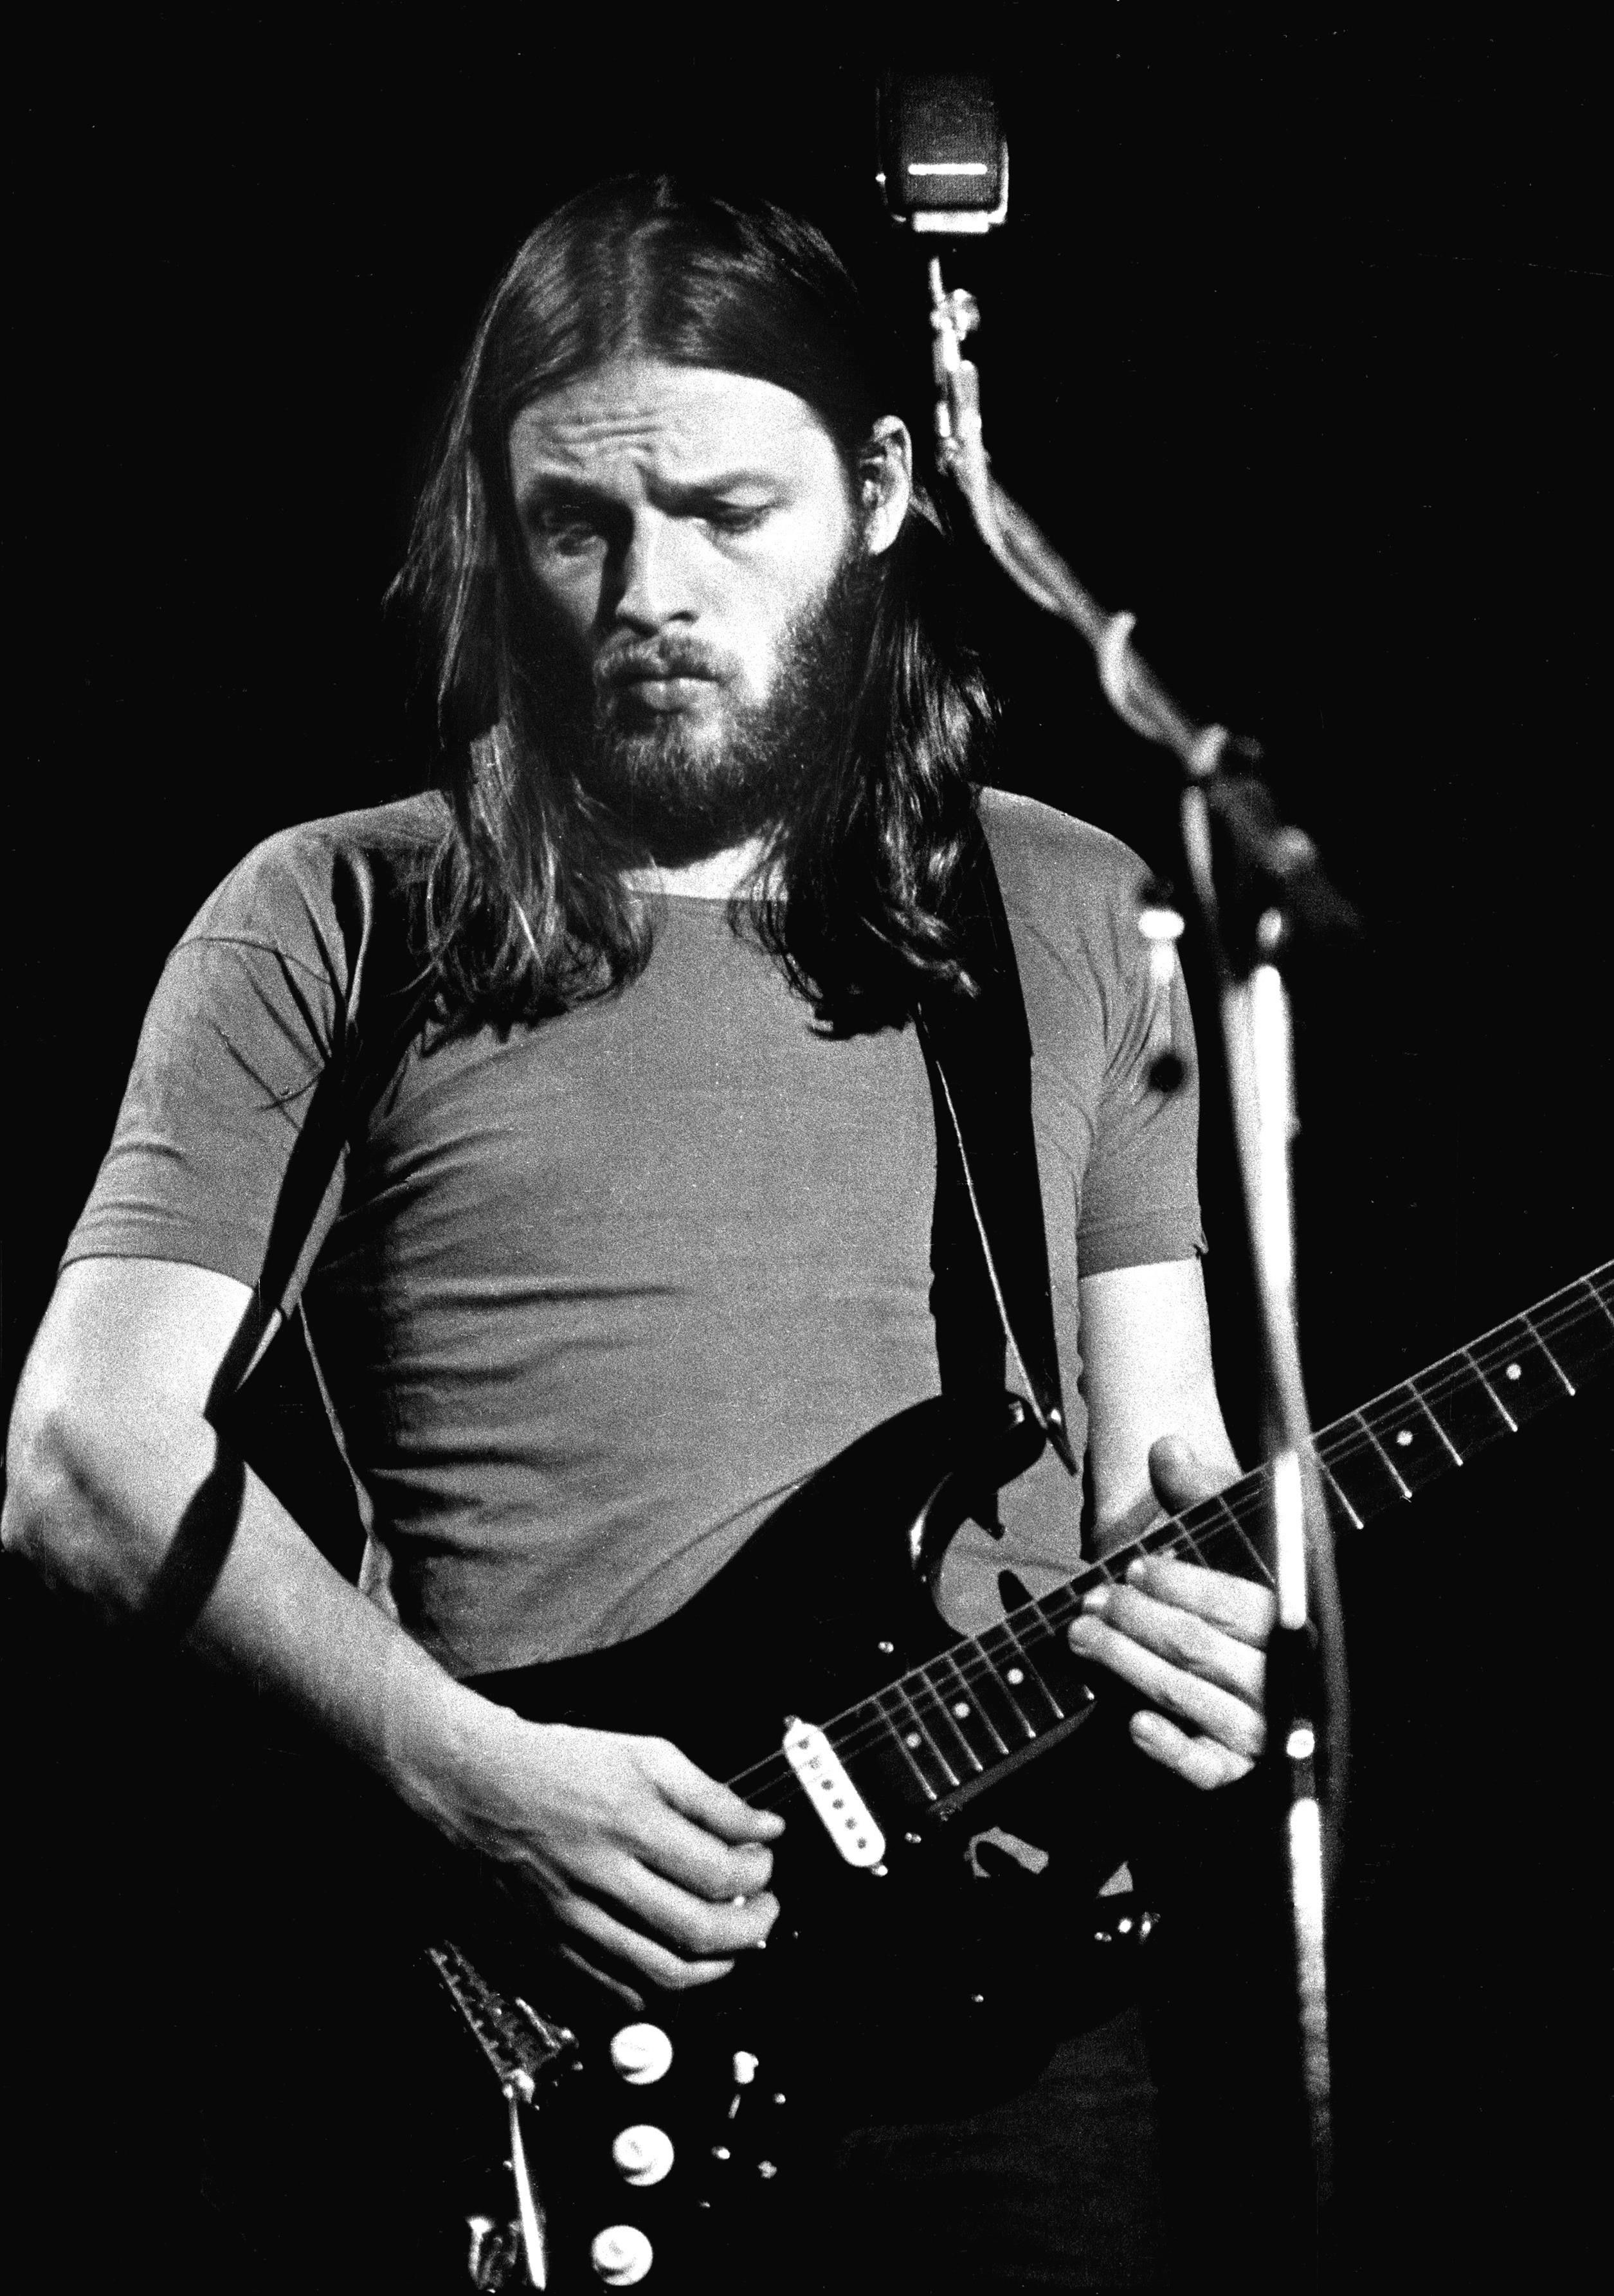 Best Hd Photos Wallpapers Pics Of David Gilmour In 2019